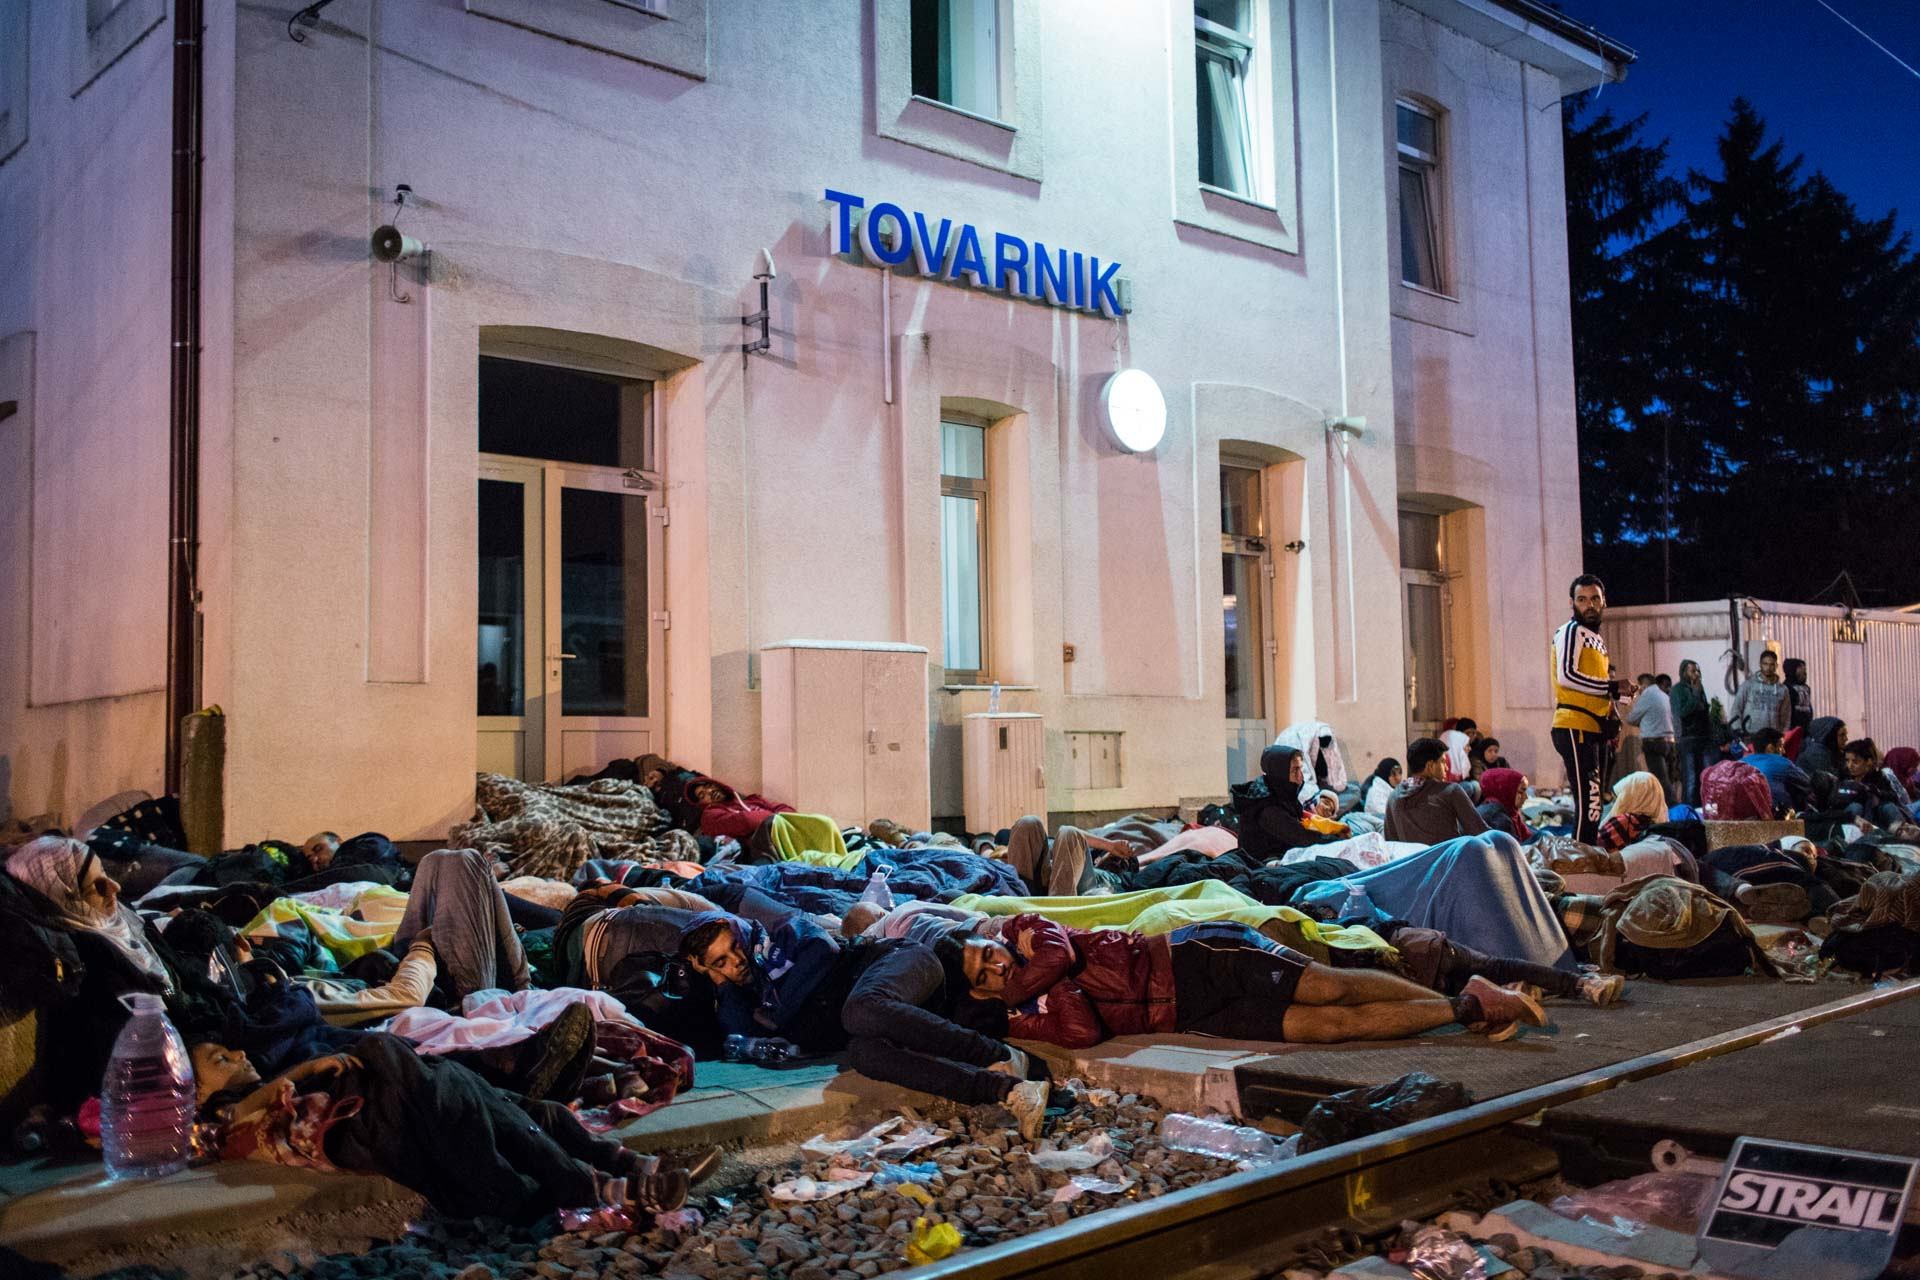 Refugees unable to find a spot on the train to Slovenia, sleep at the railway station of the small border village Tovarnik.